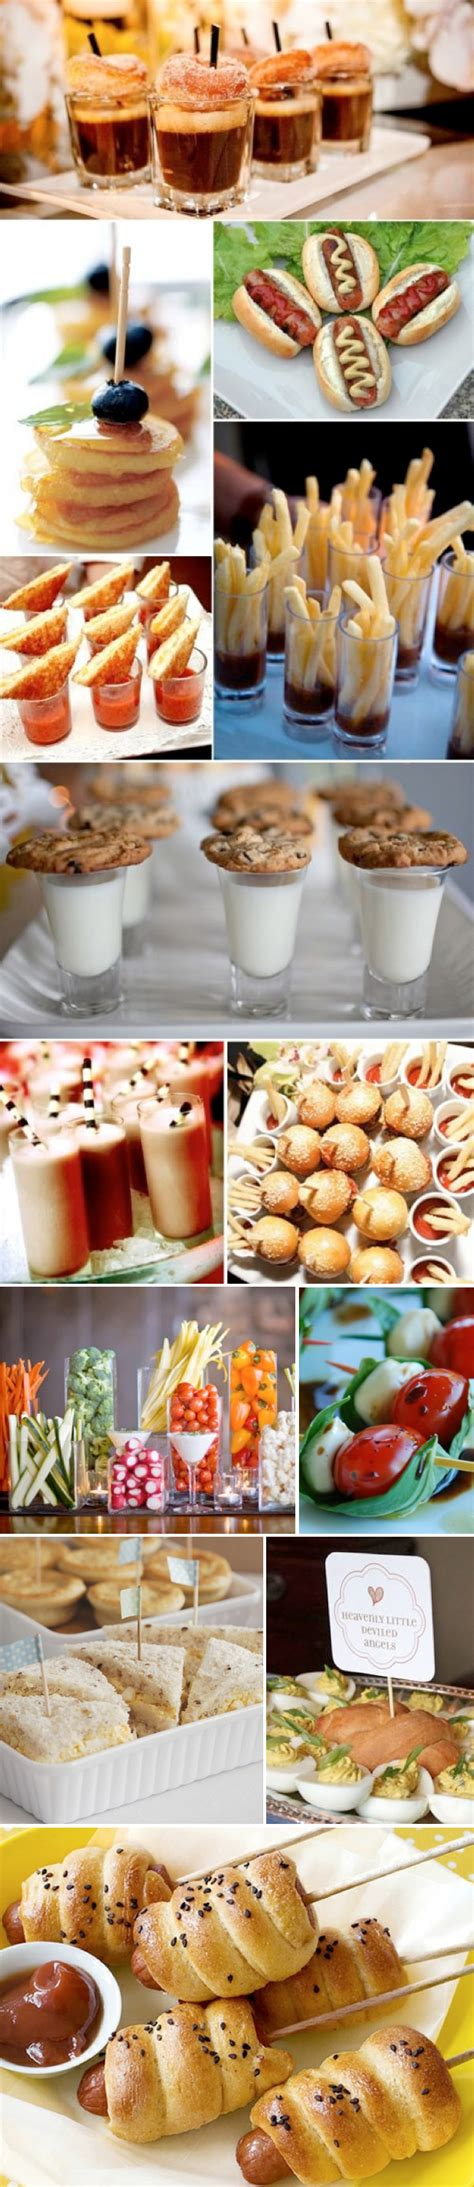 wedding reception menu ideas wedding buffet menu ideas